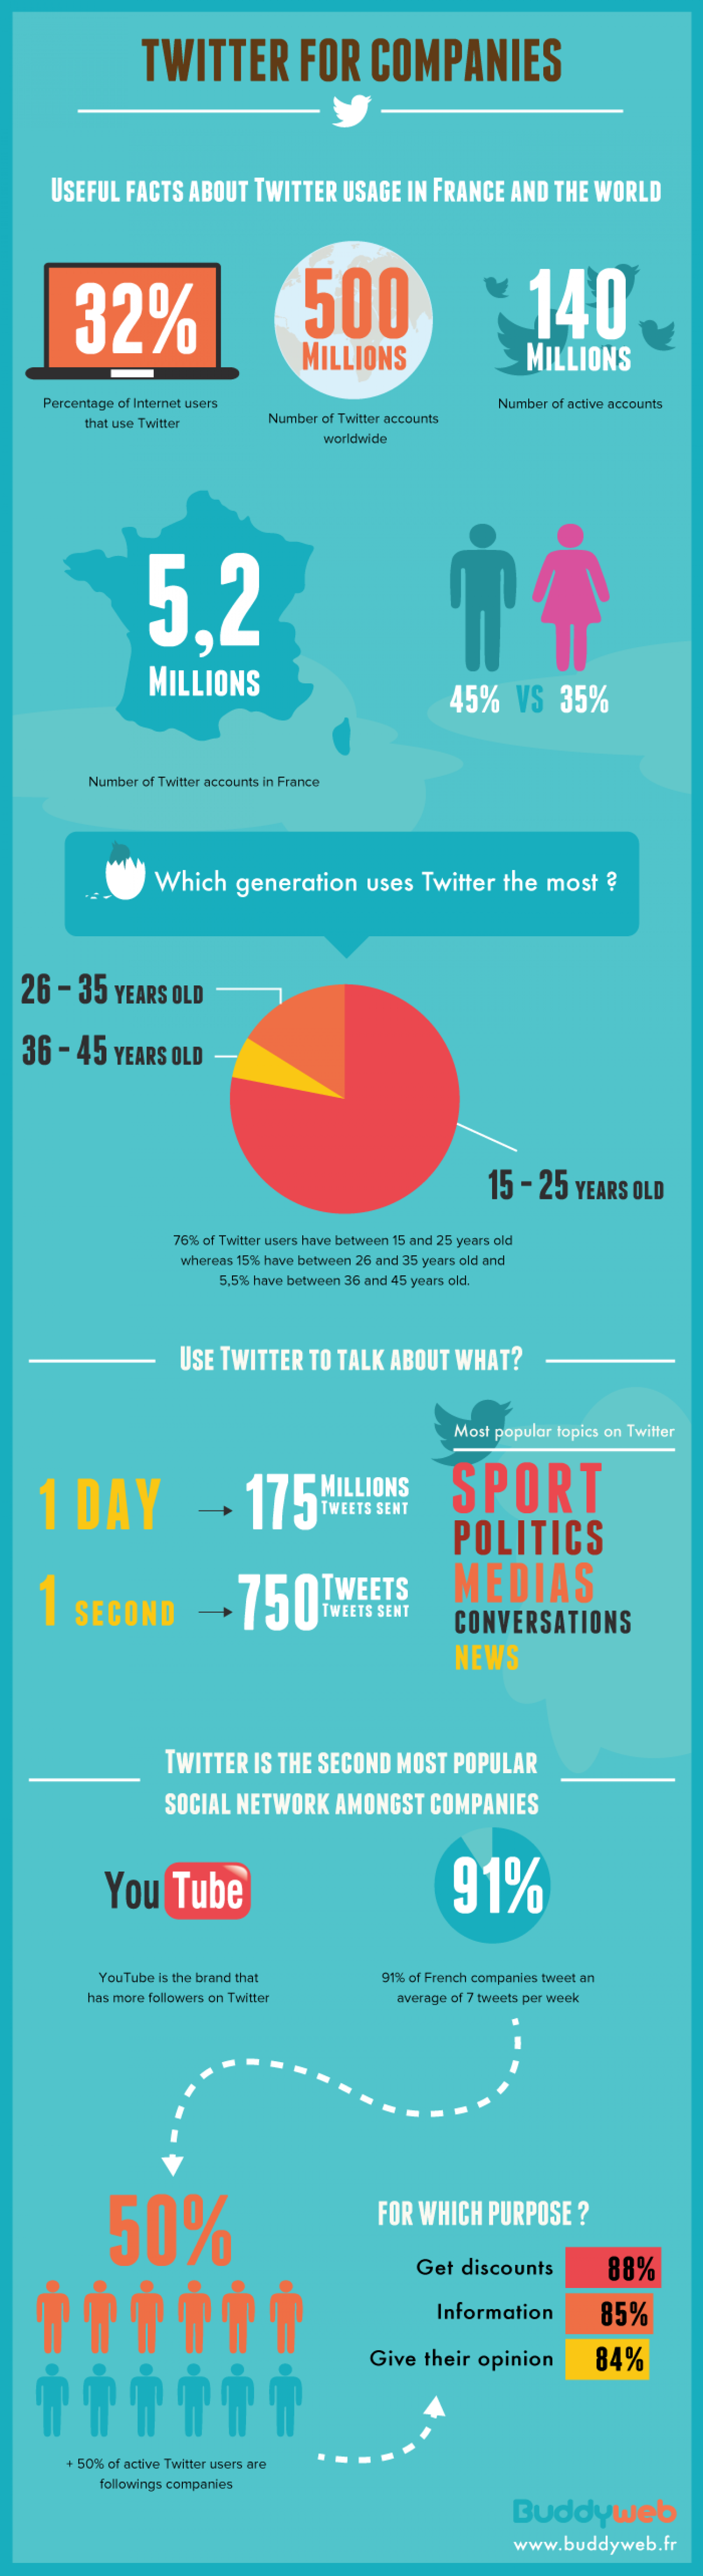 Twitter for companies Infographic